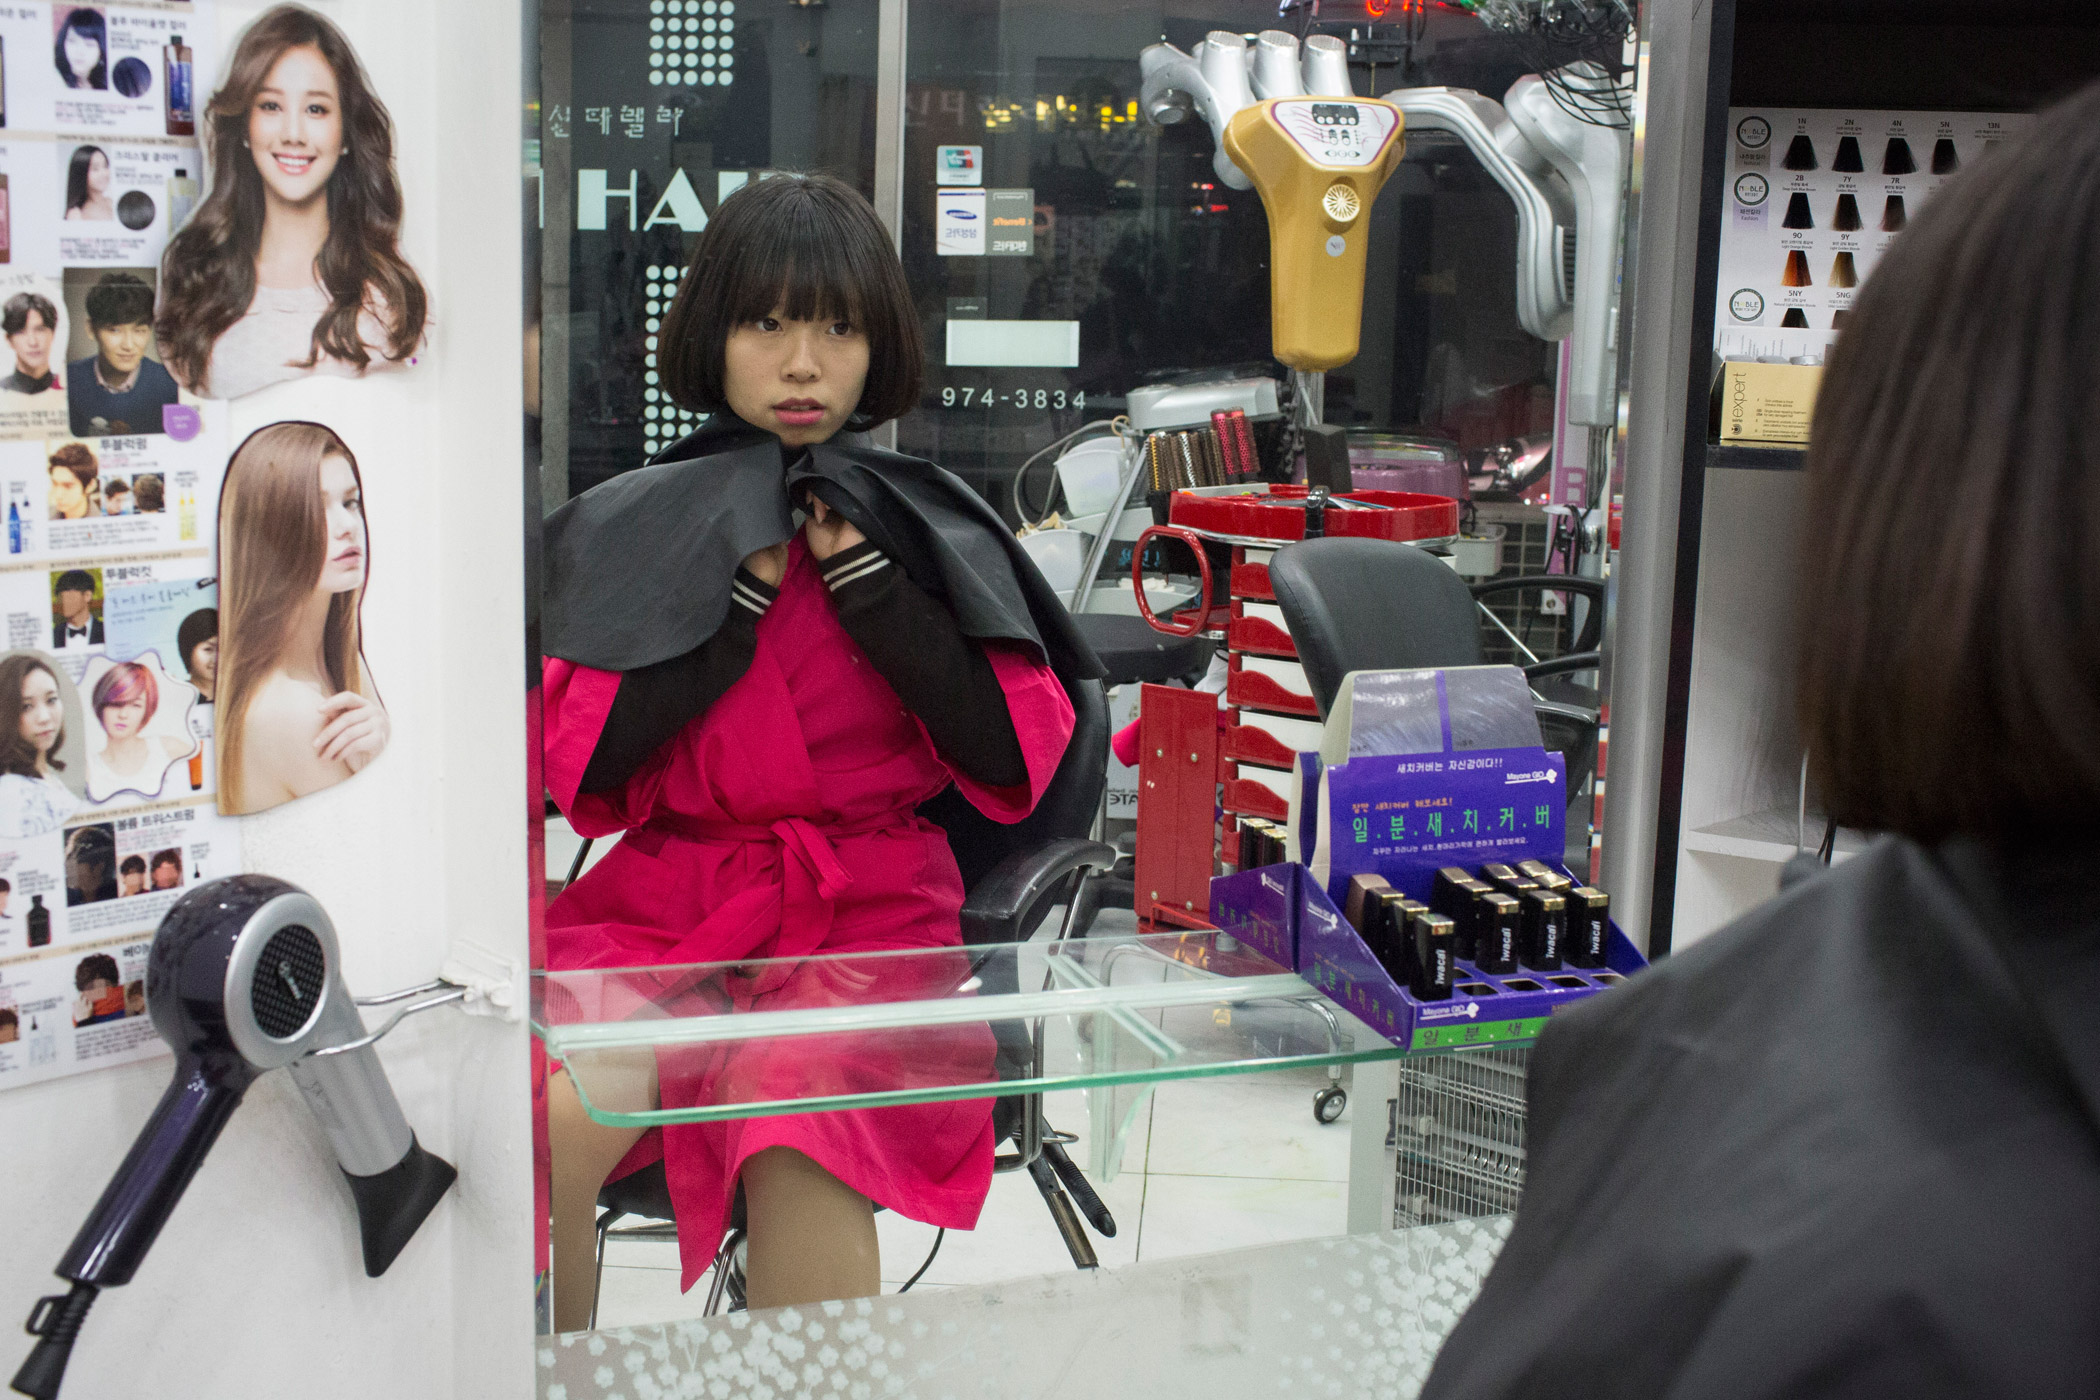 Kyoung-ok looks receives a haircut and style in her aunt's salon in Seoul, South Korea. She is training to be a hair and nail designer and helps her aunt out when she can. In North Korea, there is little room for self-expression in hair styles, where acceptable styles are sanctioned.